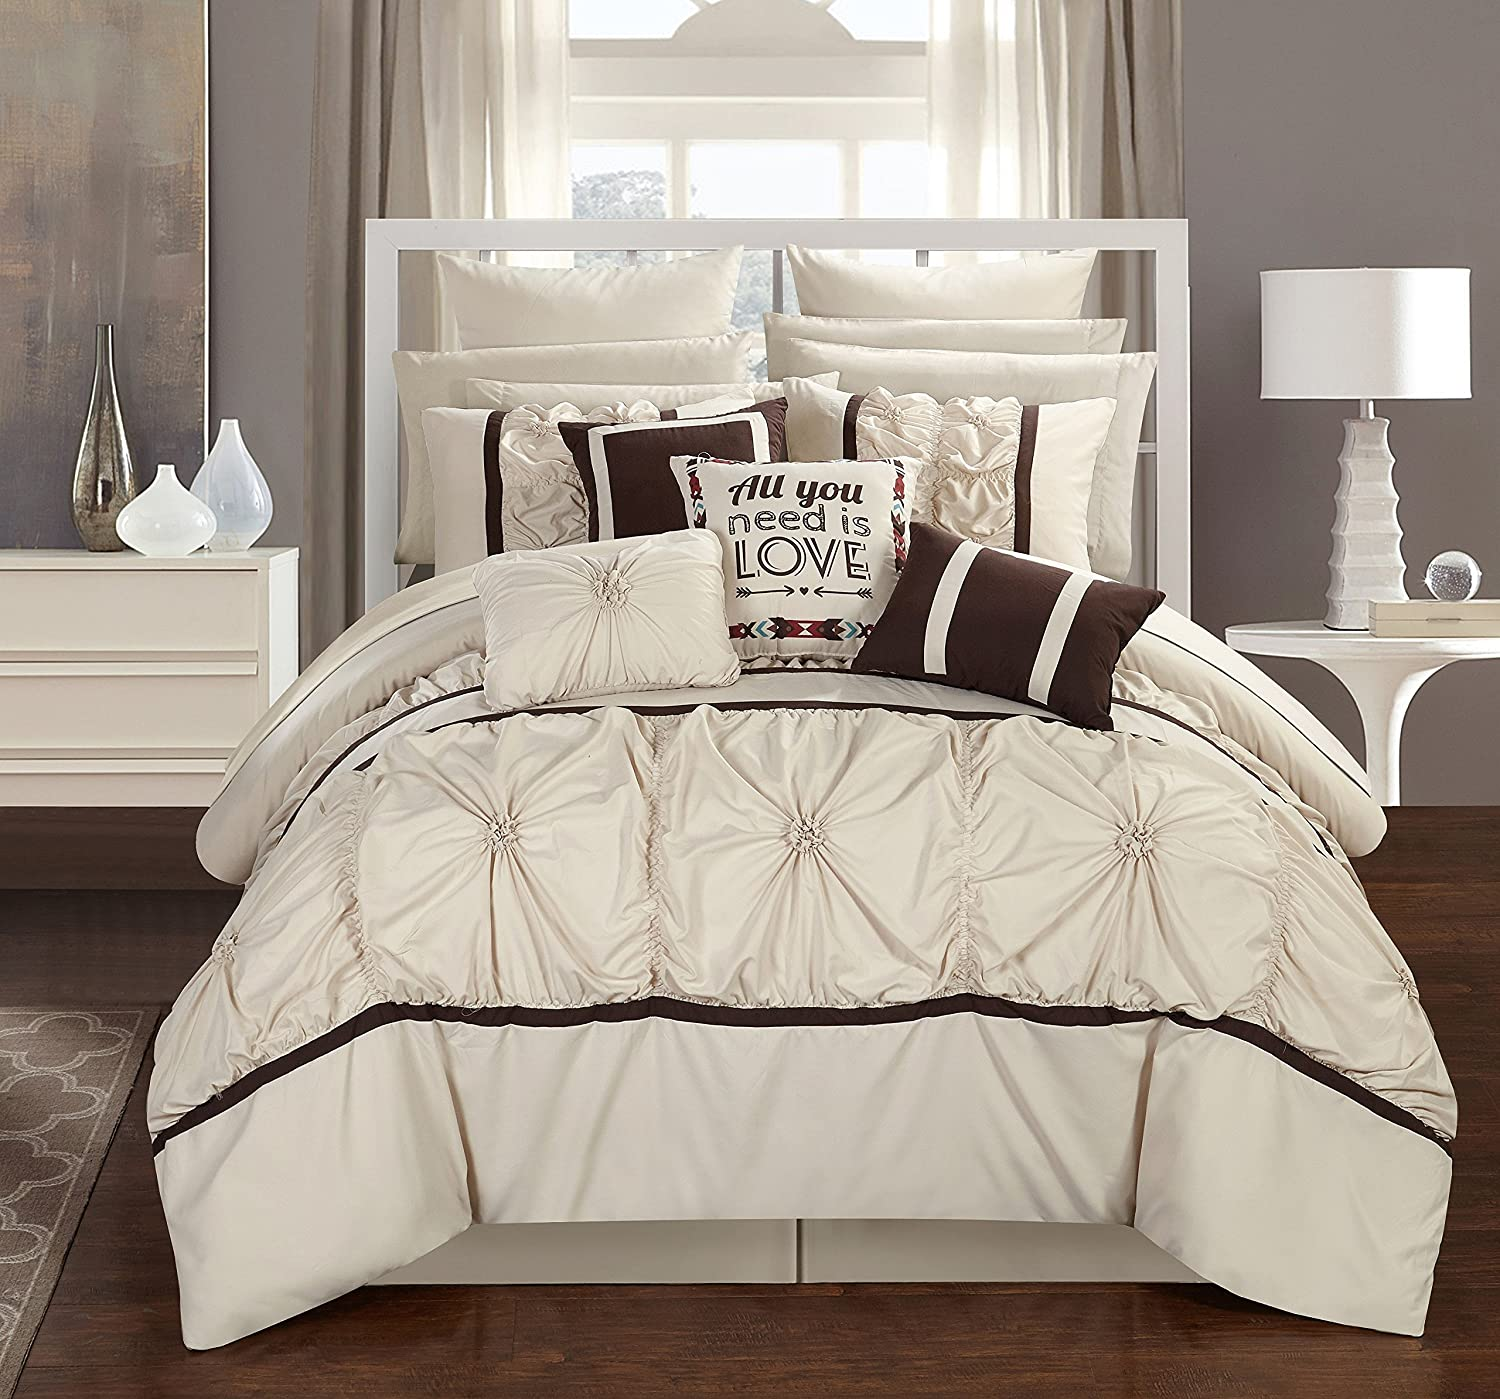 Low Cost Chic Home 16 Piece Legaspi Floral Queen Bed In A Bag,